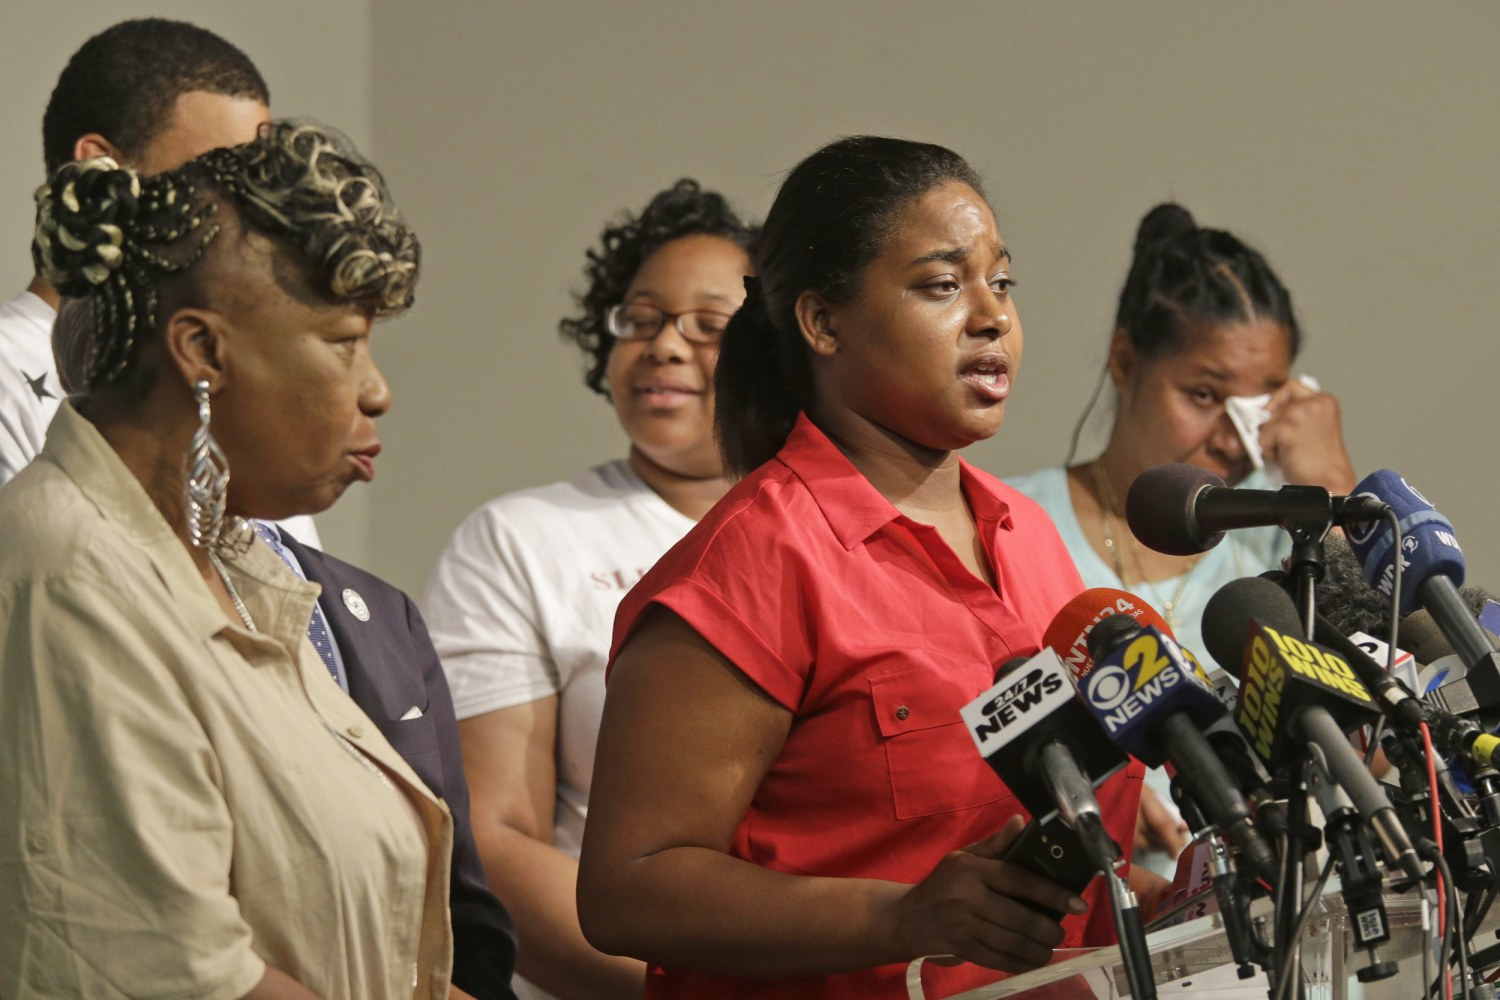 Erica Garner, Activist and Mother, Dies at 27 Following Coma